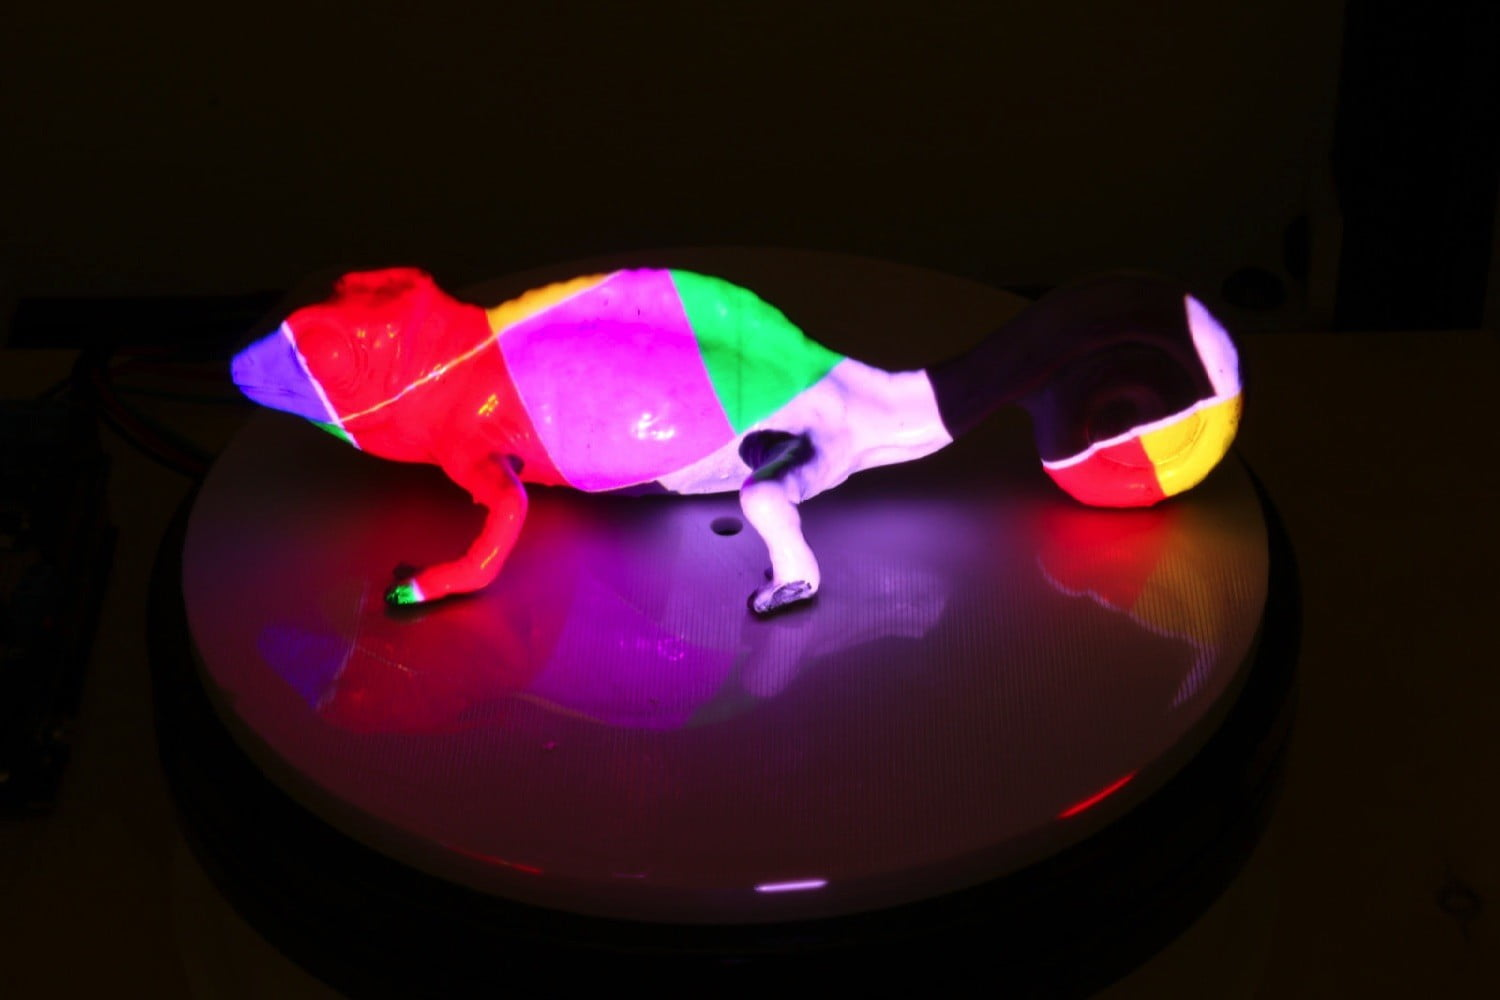 MIT's amazing reprogrammable ink can create color-changing objects